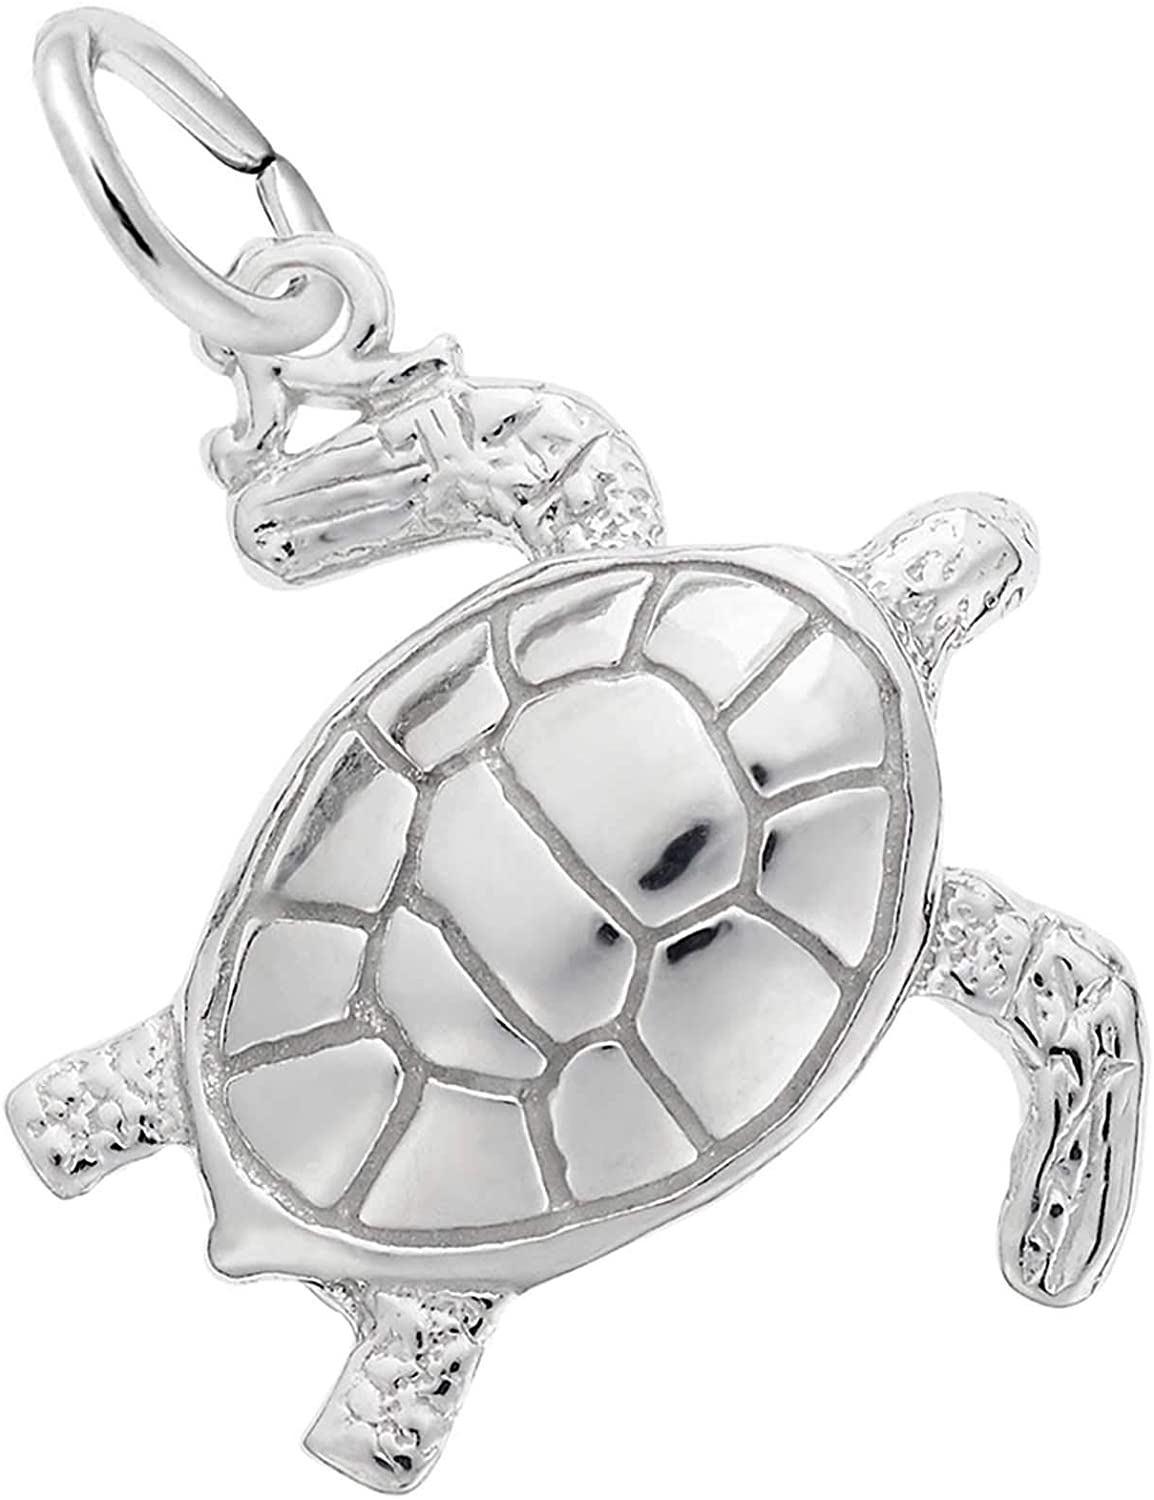 Rembrandt Charms Tortoise Charm